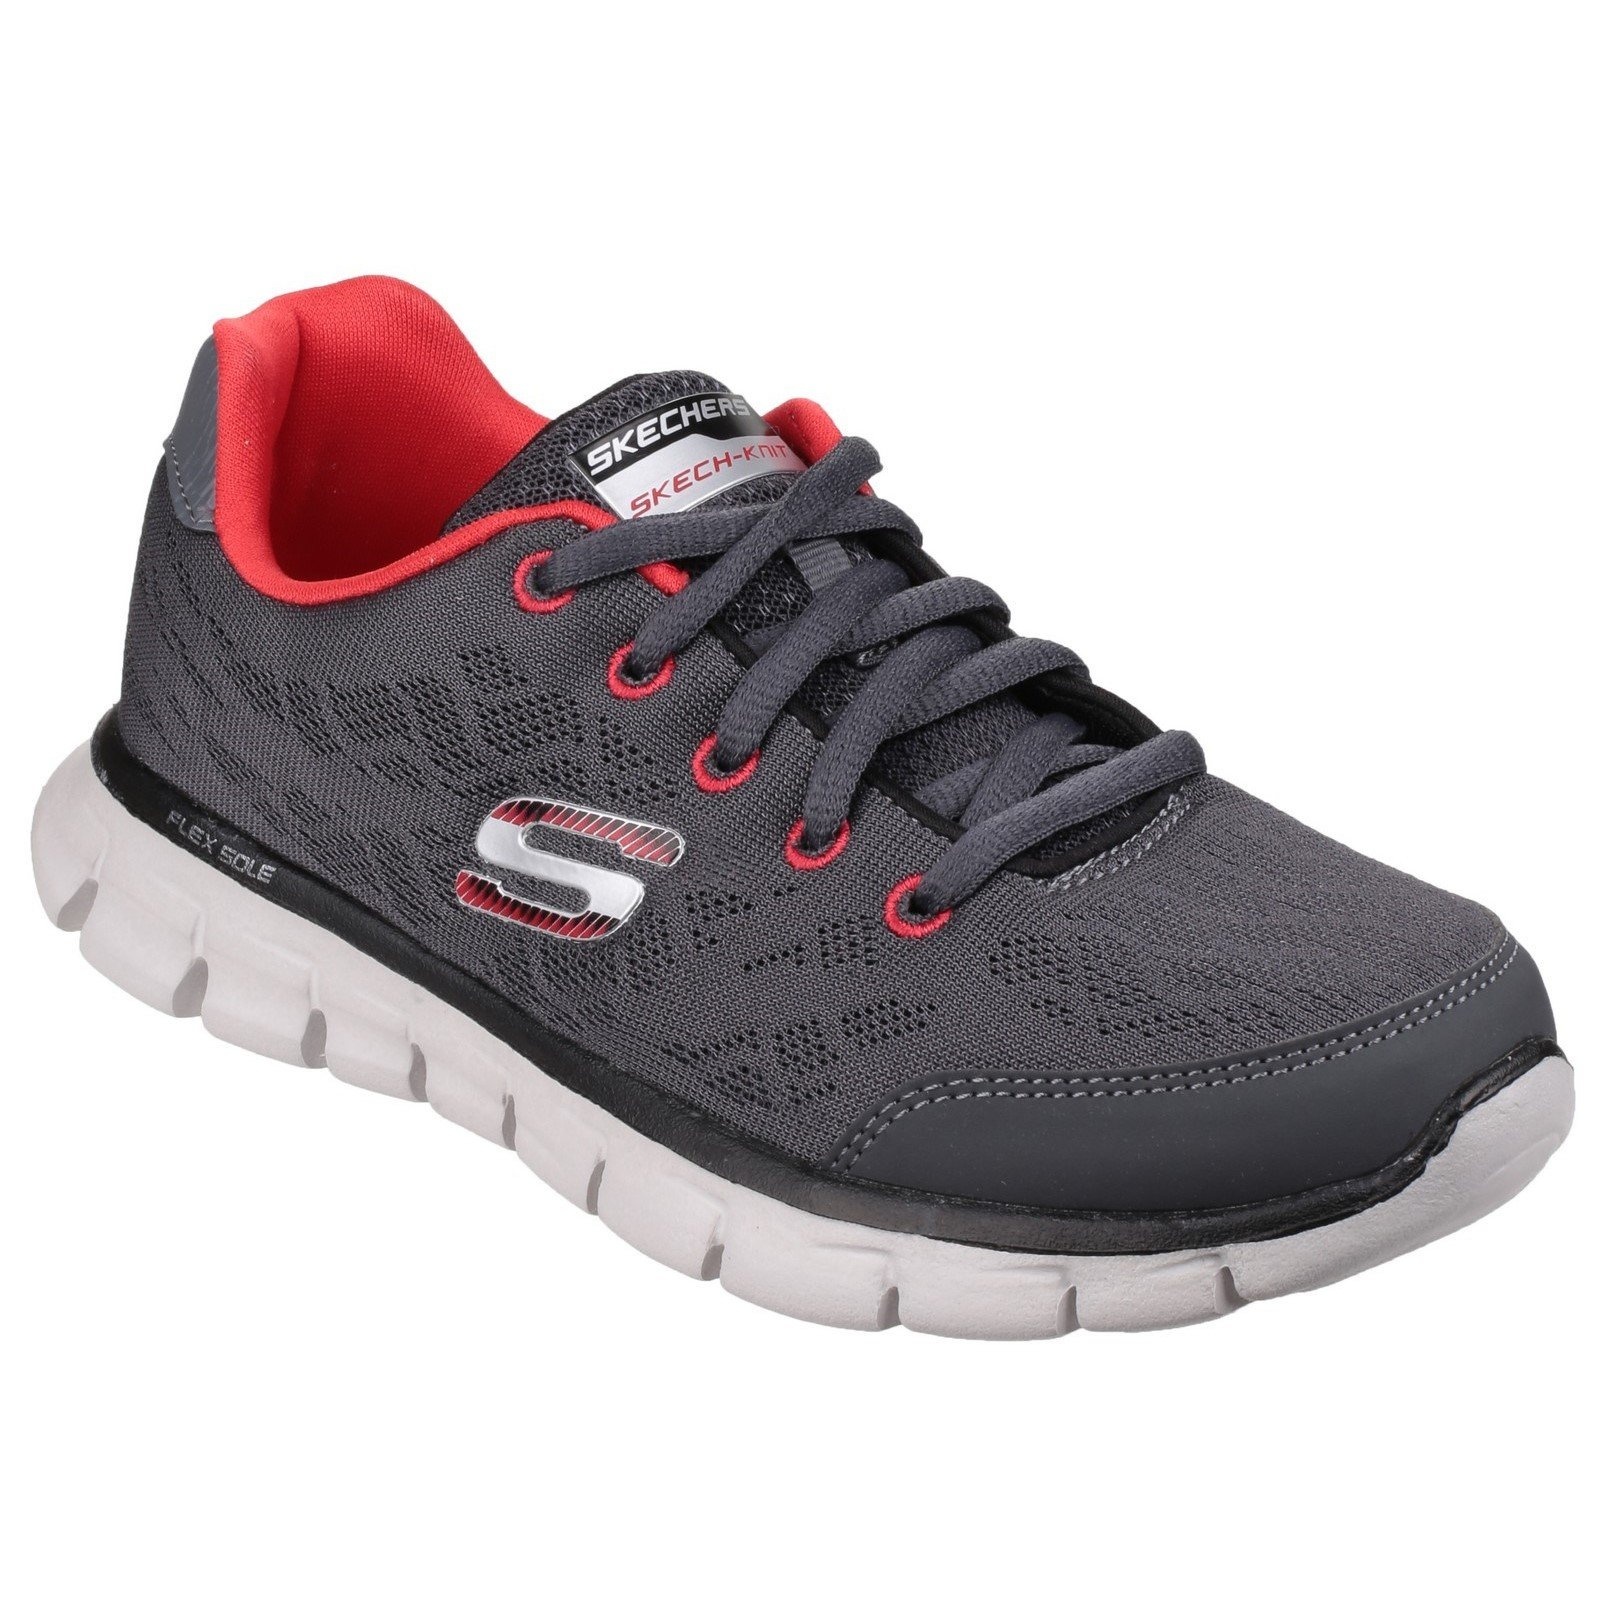 Skechers Kid's Synergy Fine Tune Lace up Trainer Multicolor 23918 - Grey/Red 3